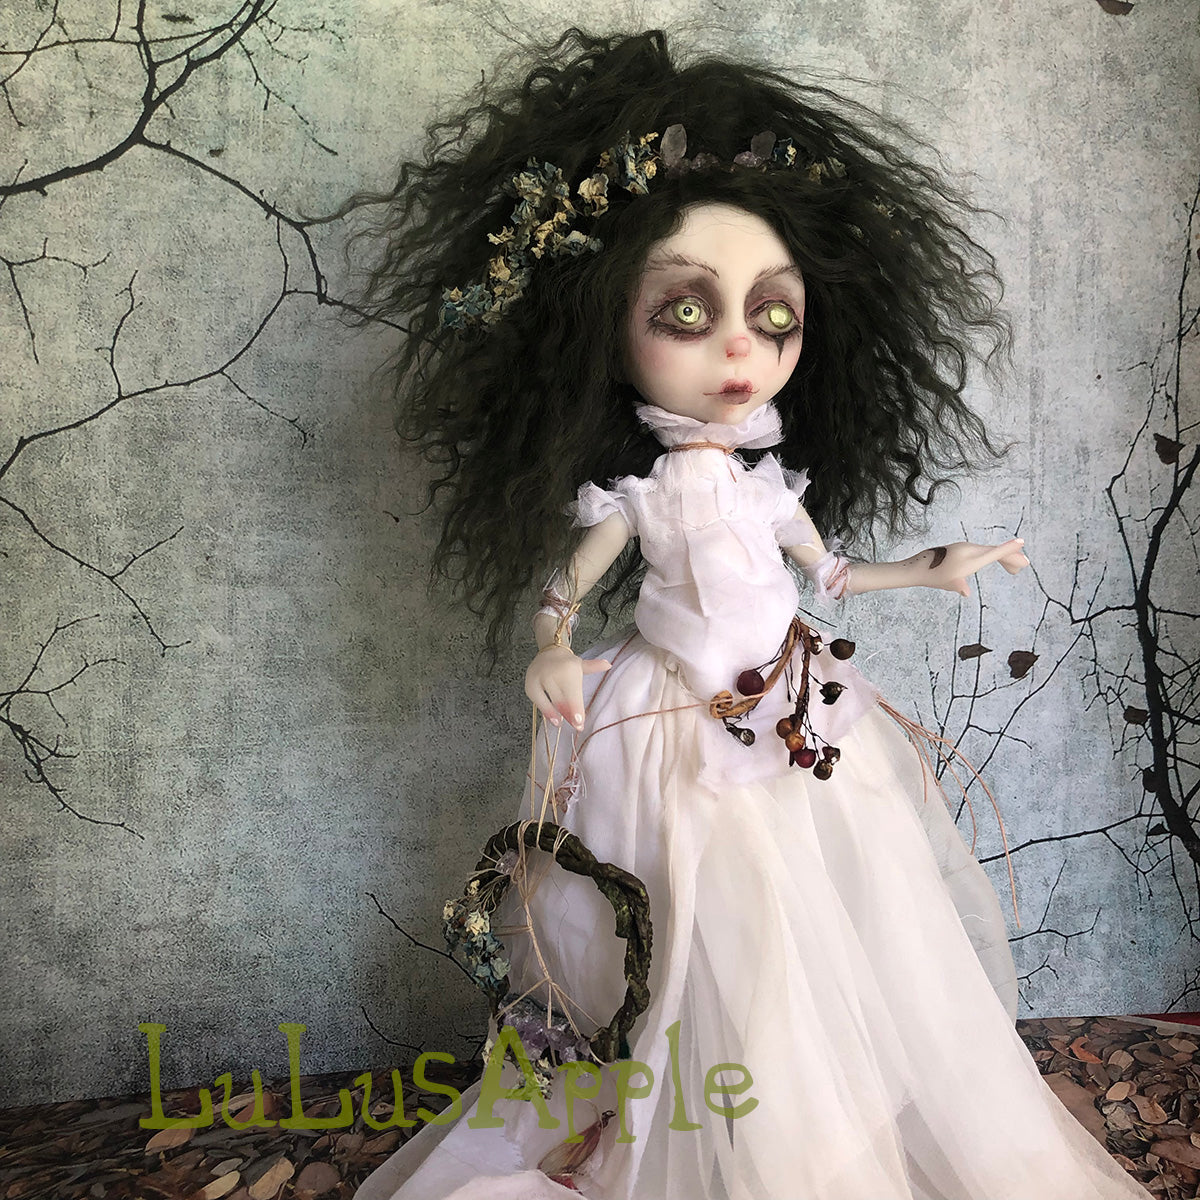 Lachlan the Hedge Witch Crystal Magick OOAK LuLusApple Art Doll